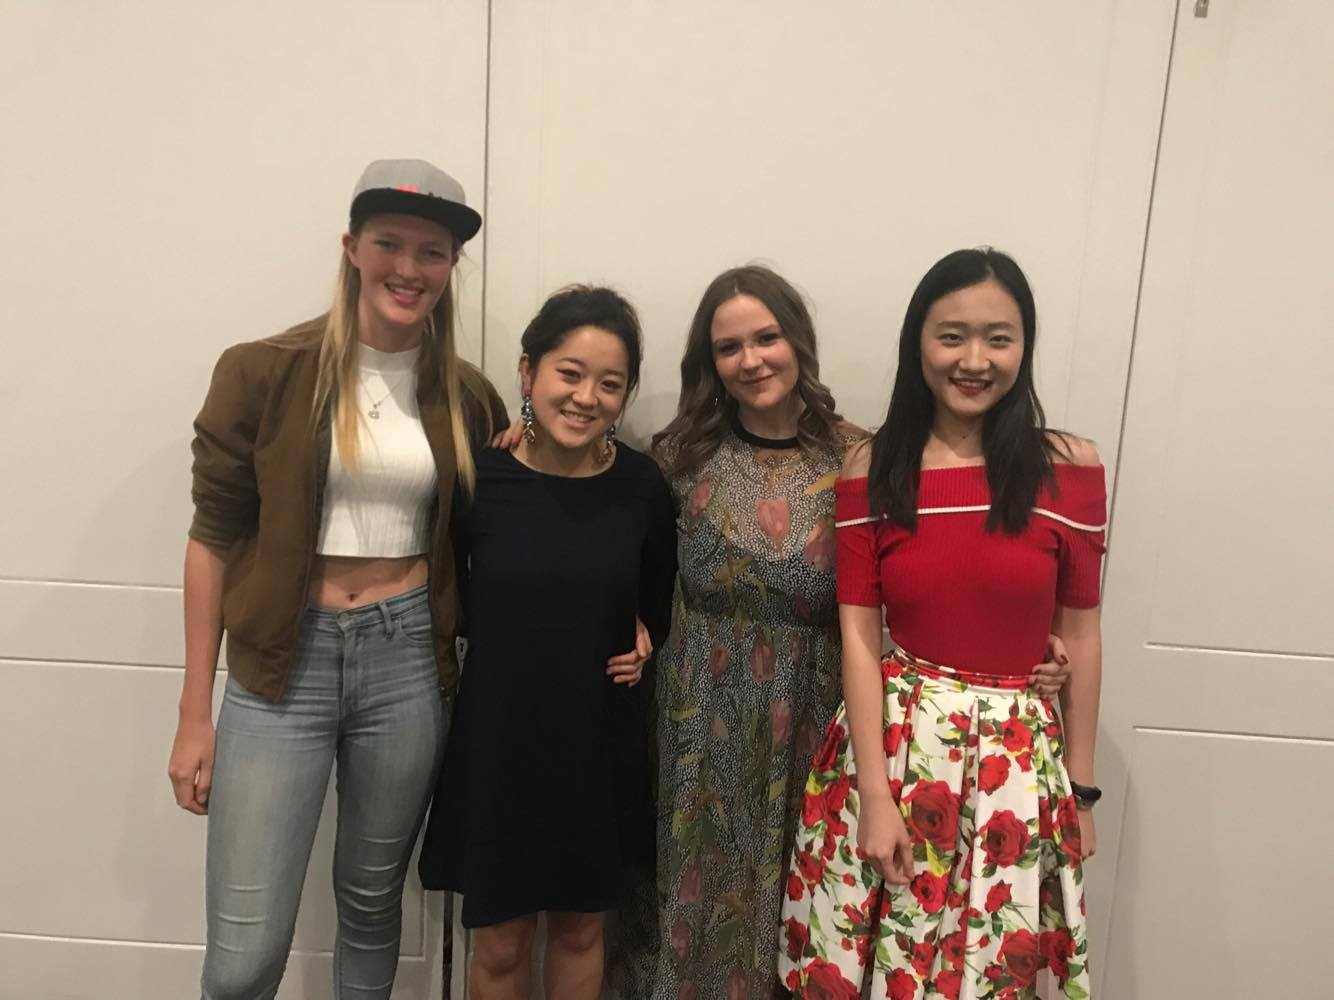 The incoming executive. From left to right: Grace Franki, Honorary Secretary, Esther Shim, Vice President, Courtney Thompson, President and Yifan Kong, Honorary Treasury.